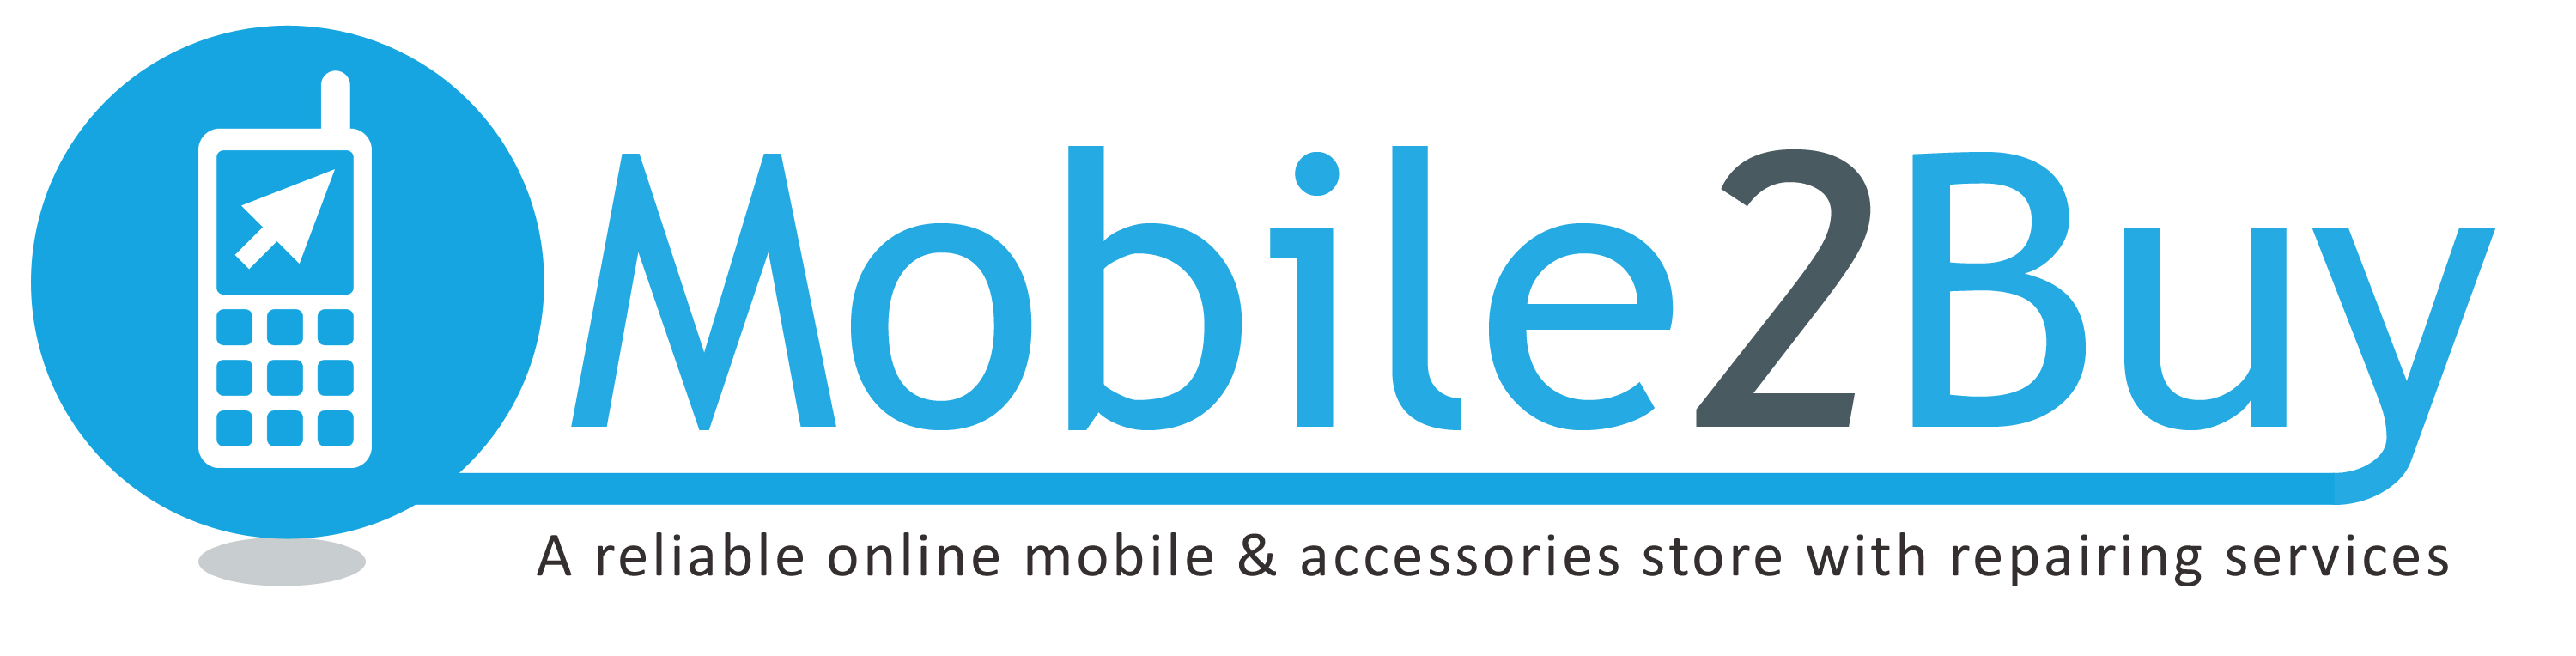 Mobile2buy